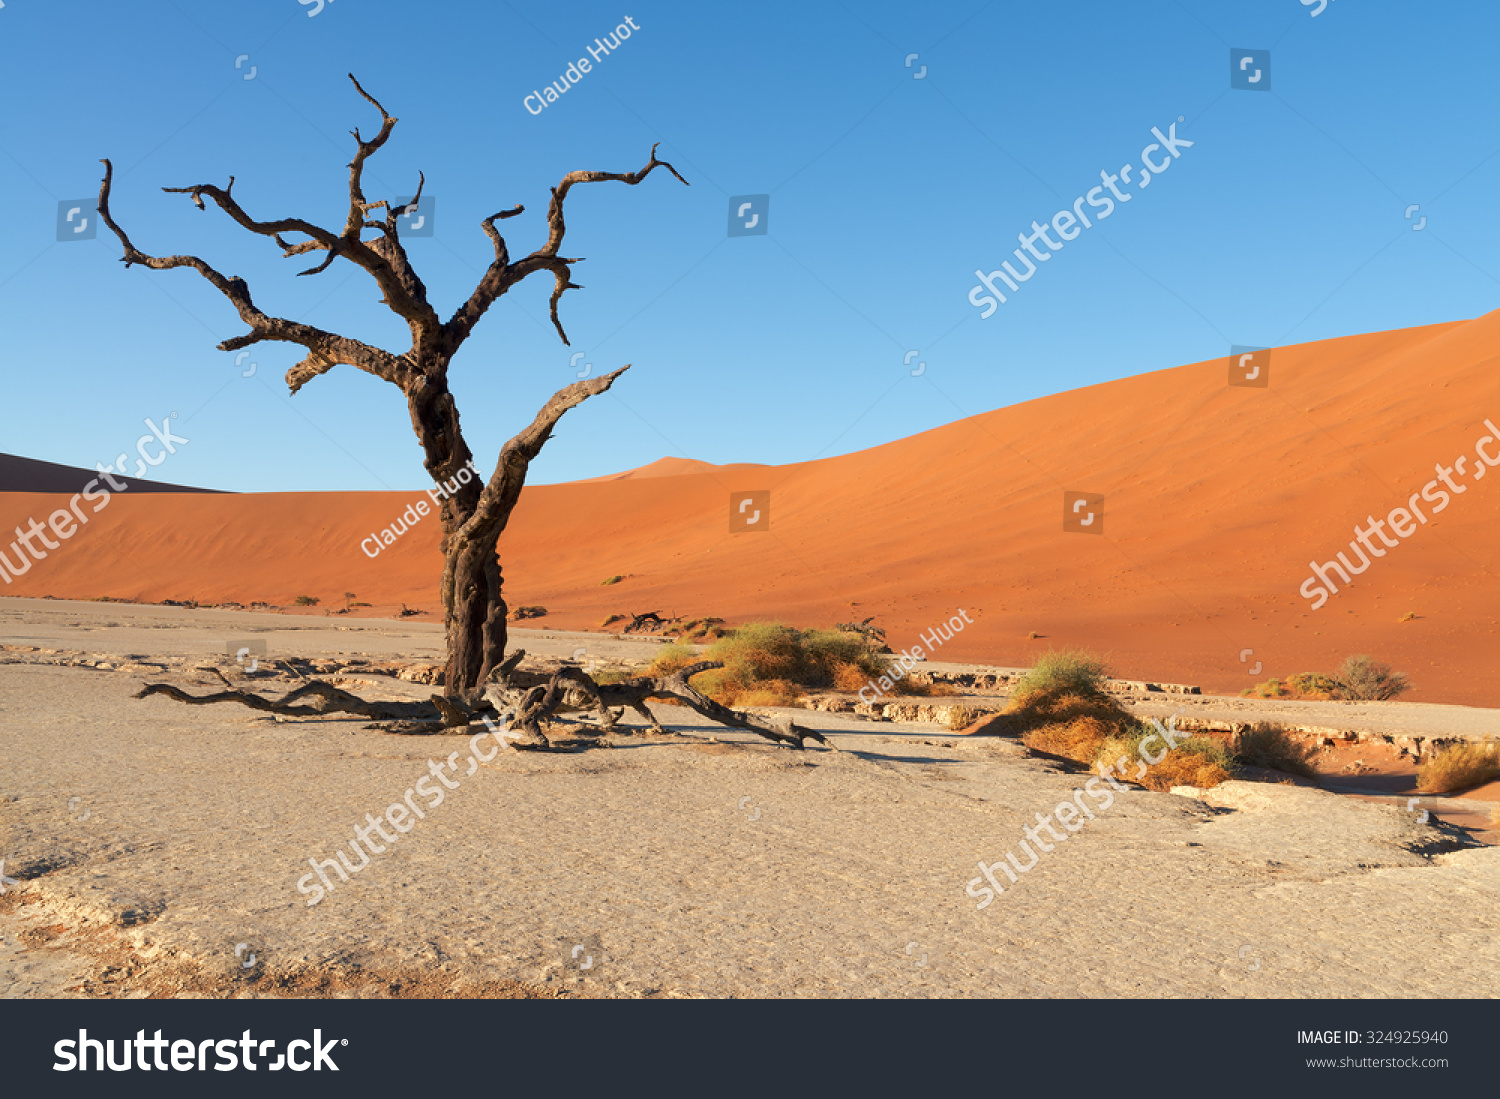 Red sand dunes and scorched dead trees shortly after sunrise in Deadvlei, Sossusvlei, Namibia